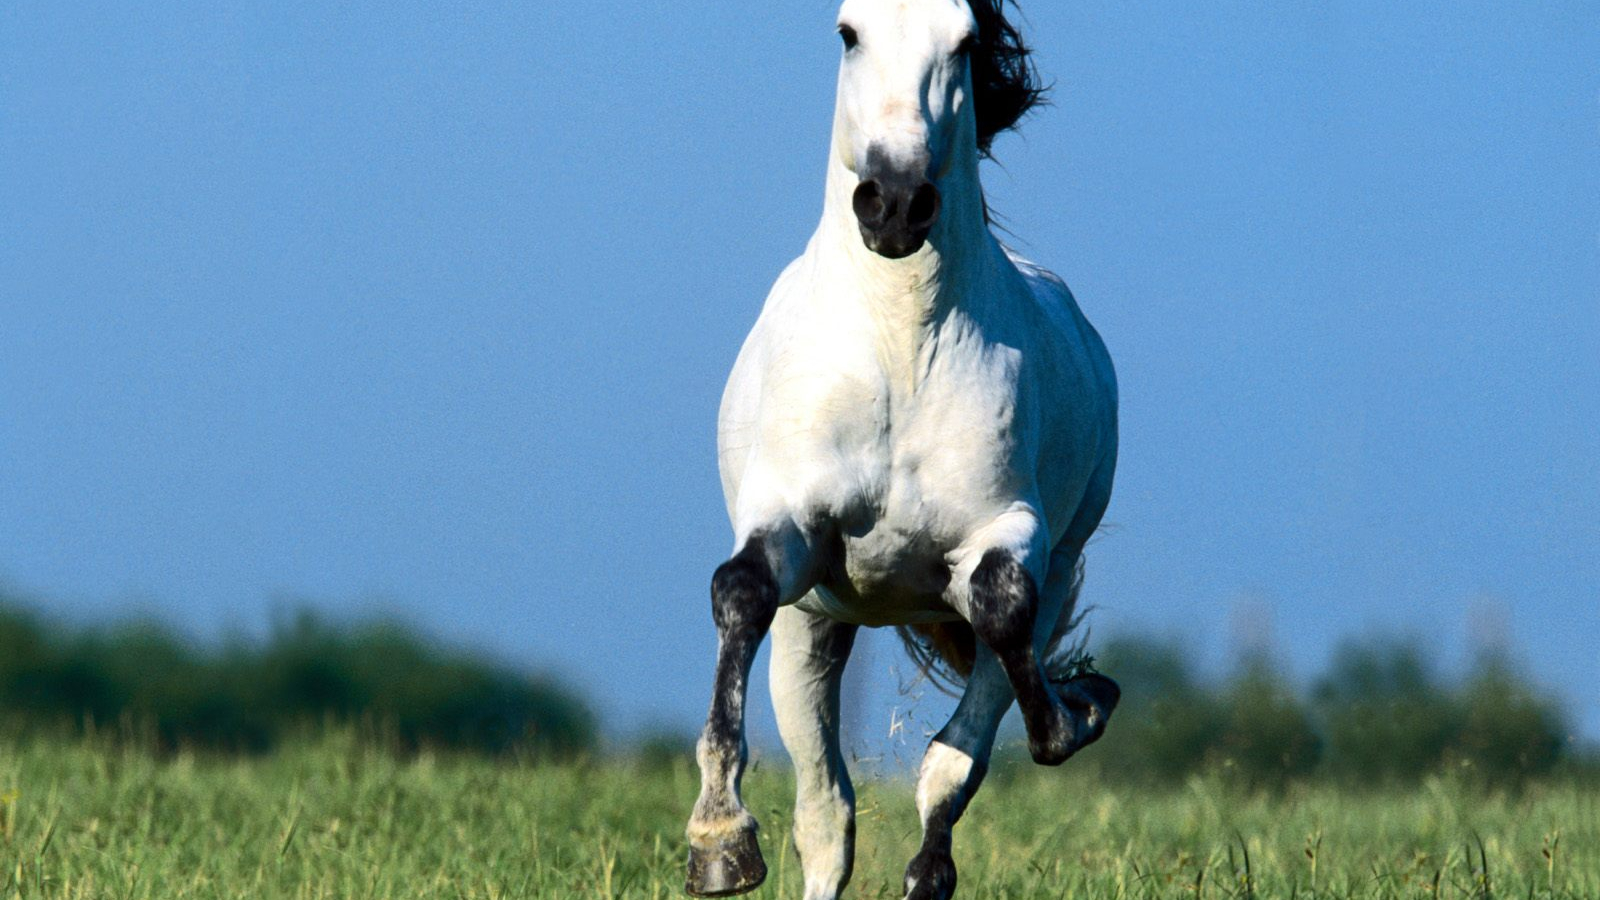 Free Download Running Horse Wallpapers White Horses Running